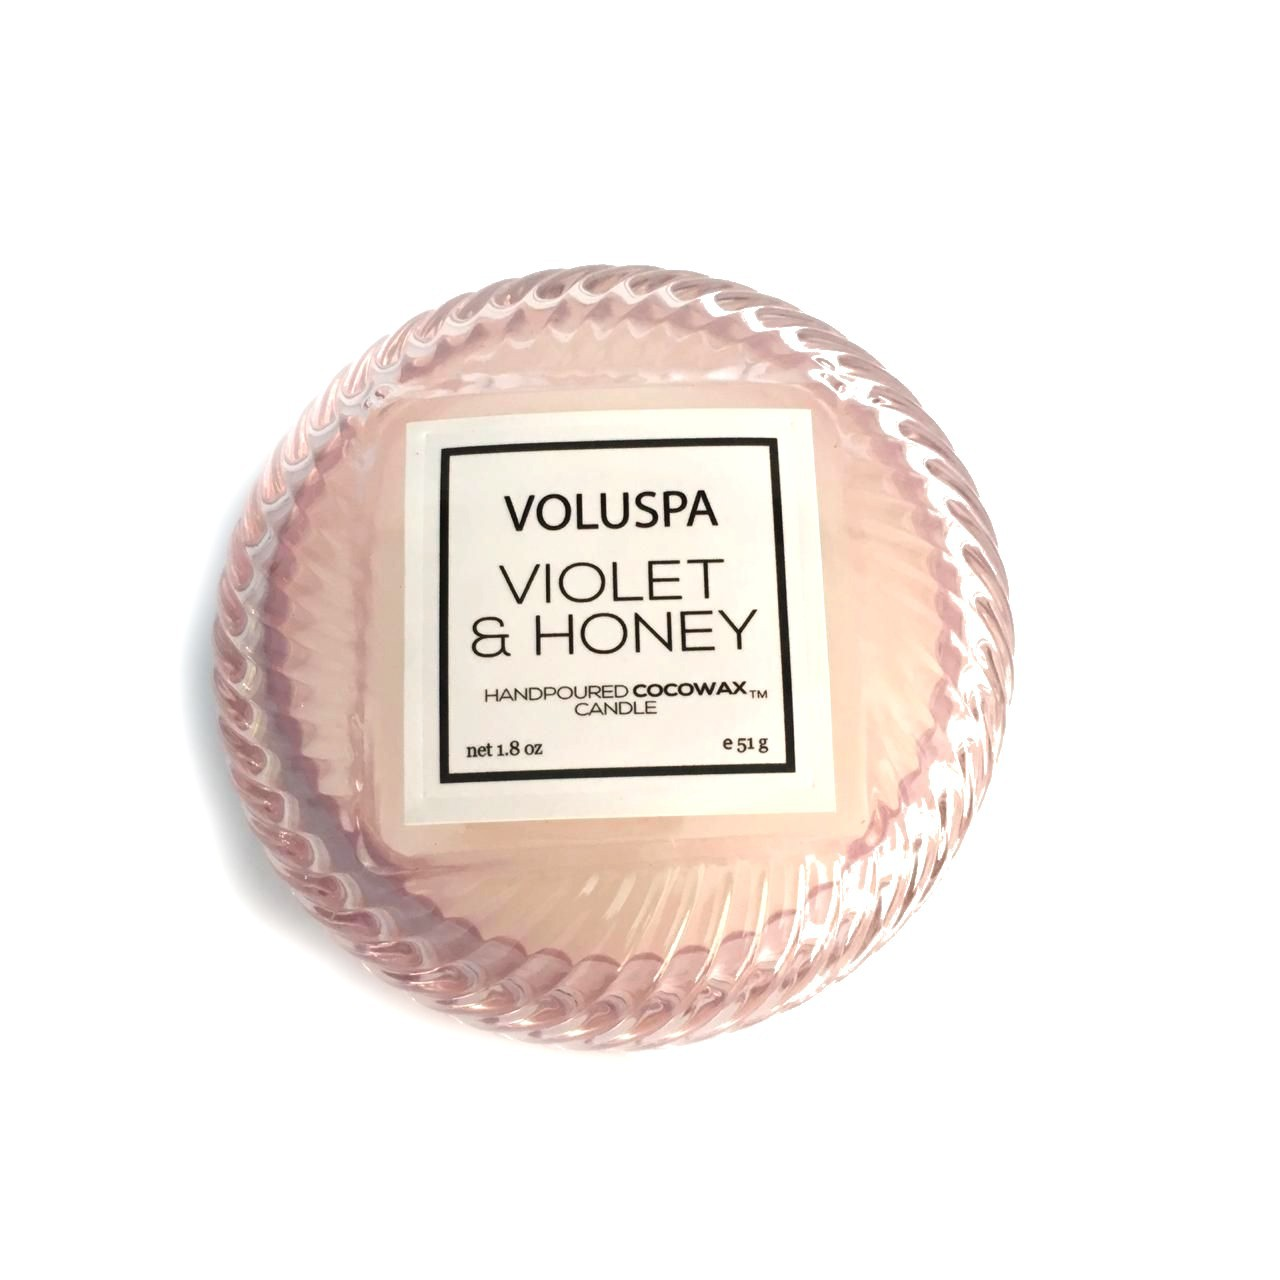 Mini vela VOLUSPA Macaron 15H Violet e Honey